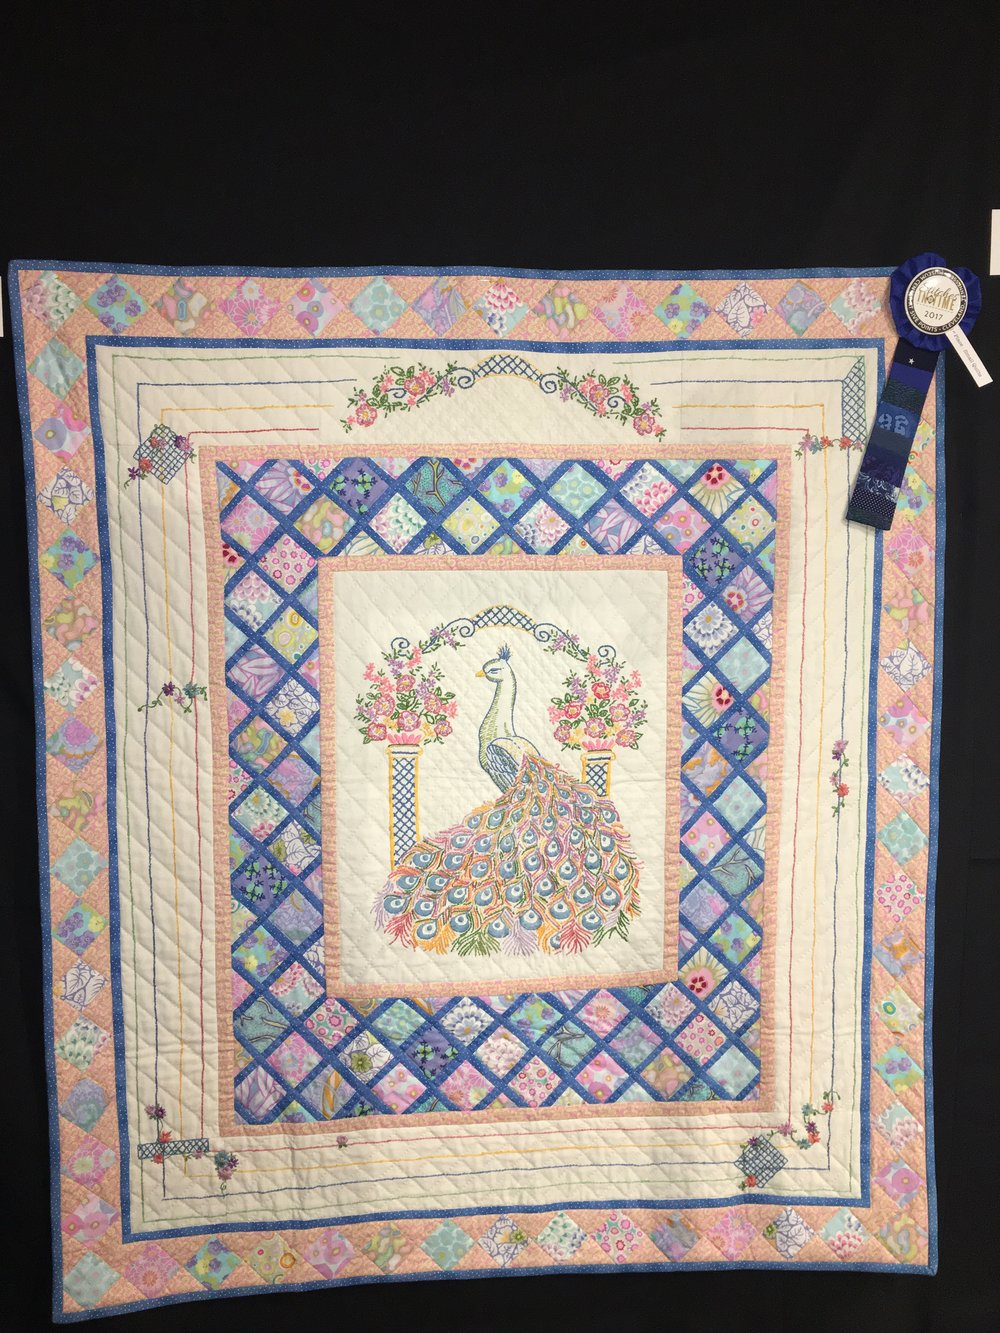 1st Place Small Quilts: Pastel Peacock entered by Phyllis Callaway